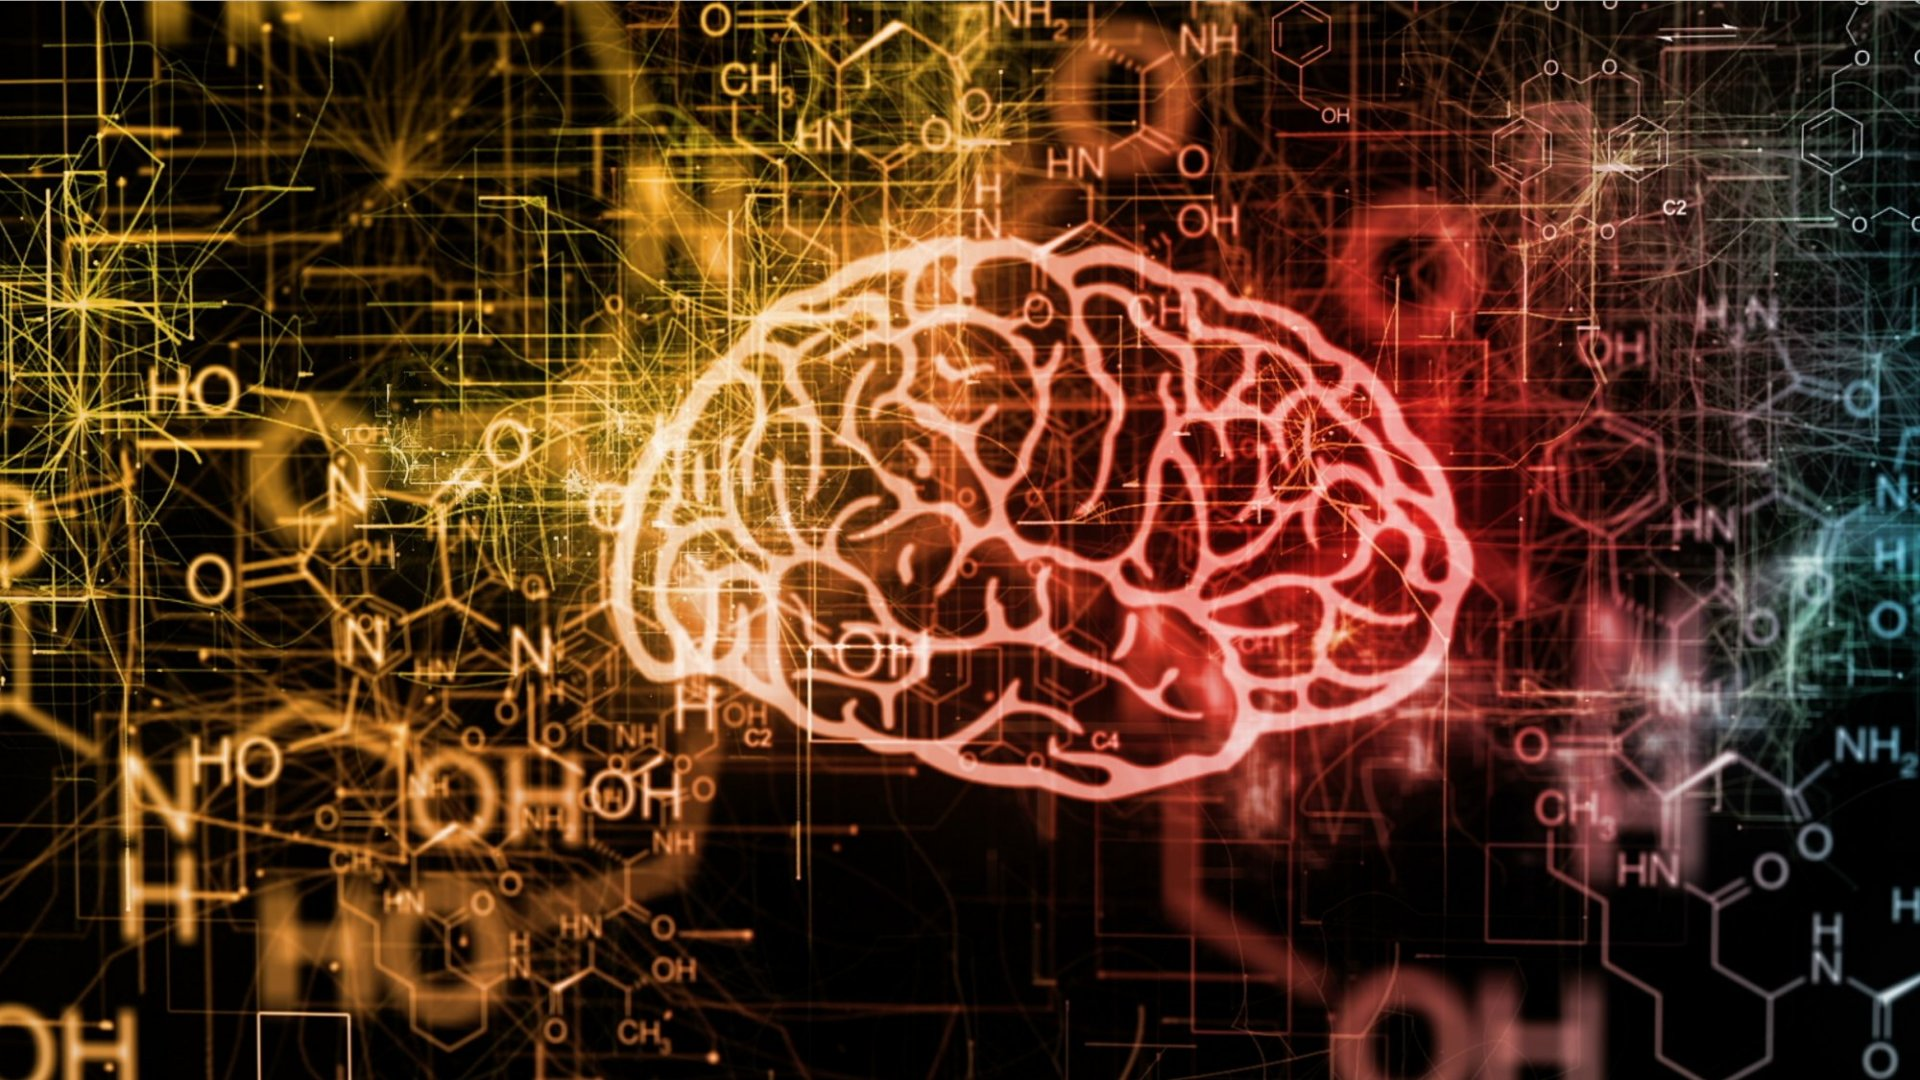 6 Brain Augmentations That Will Help You Work Faster and Smarter by 2030